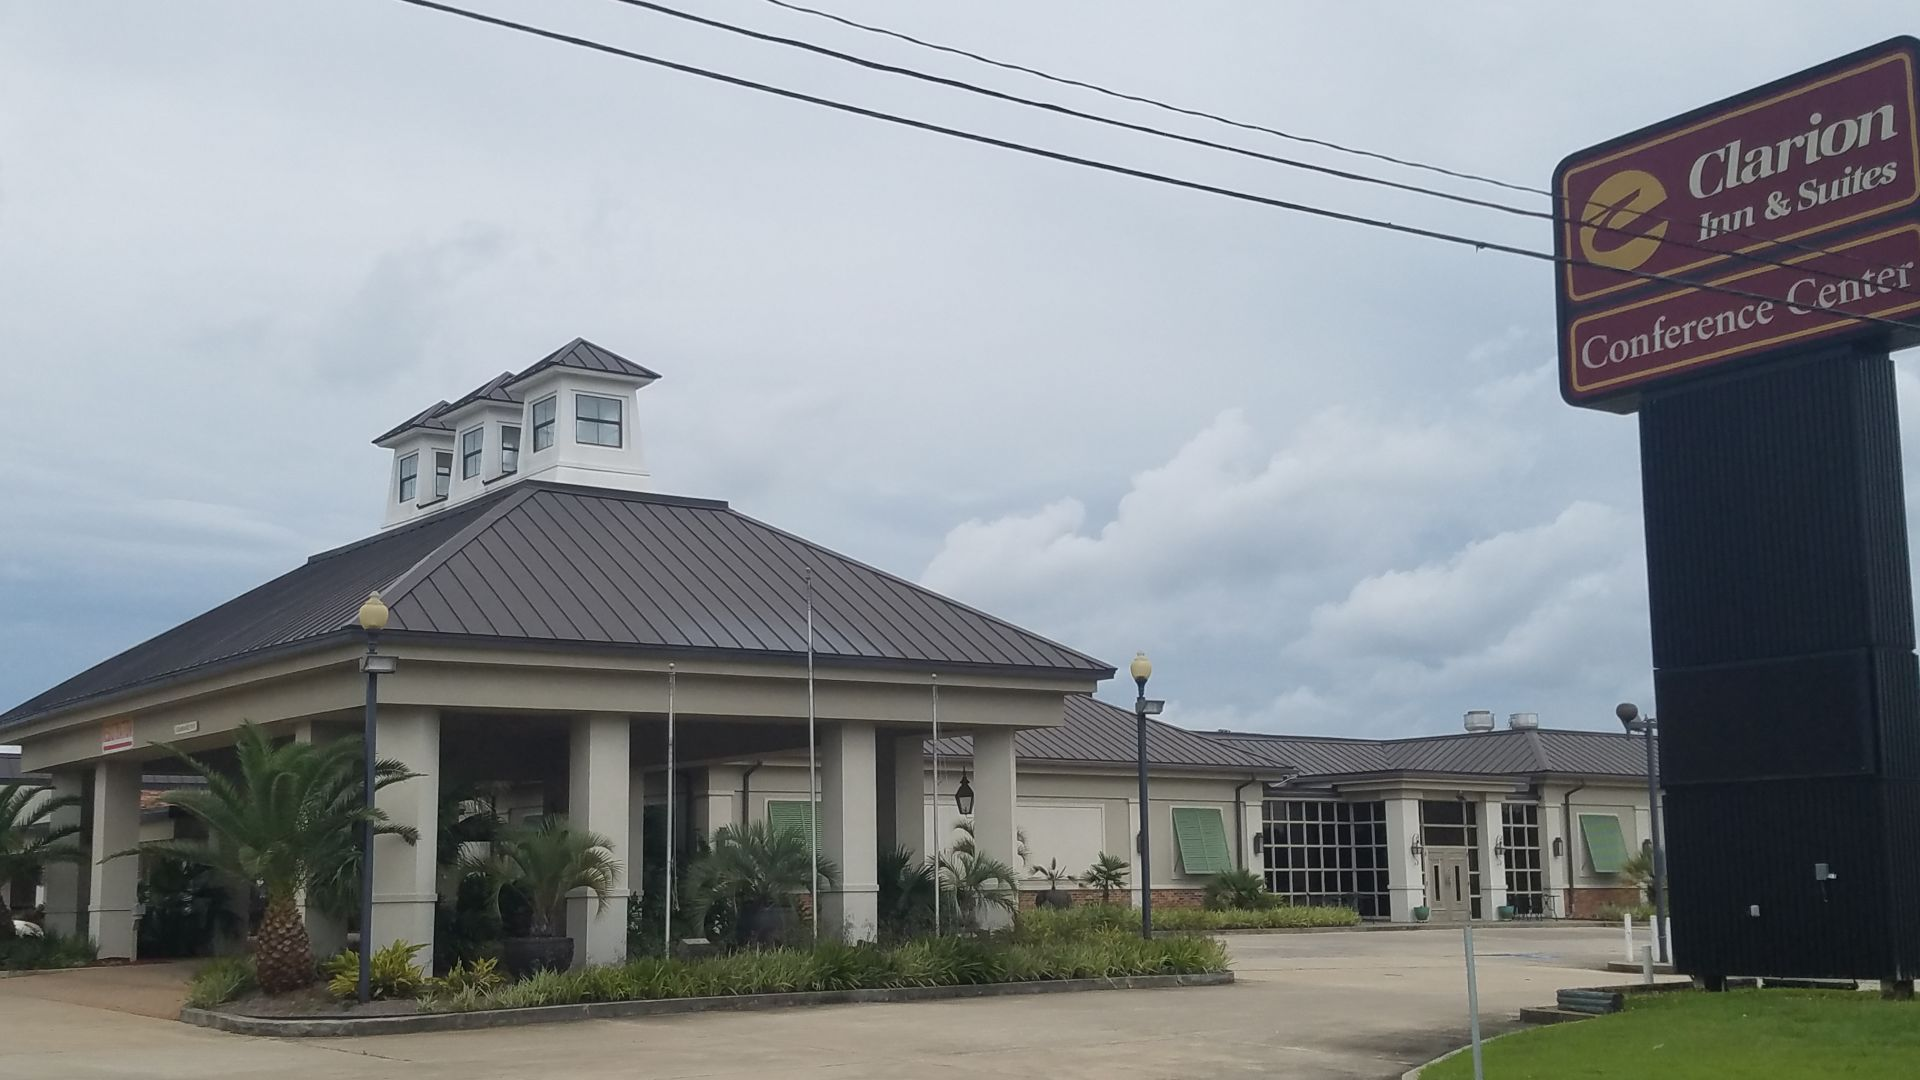 St. Tammany's largest full-service hotel closes, leaves tourism officials scrambling for alternate locations